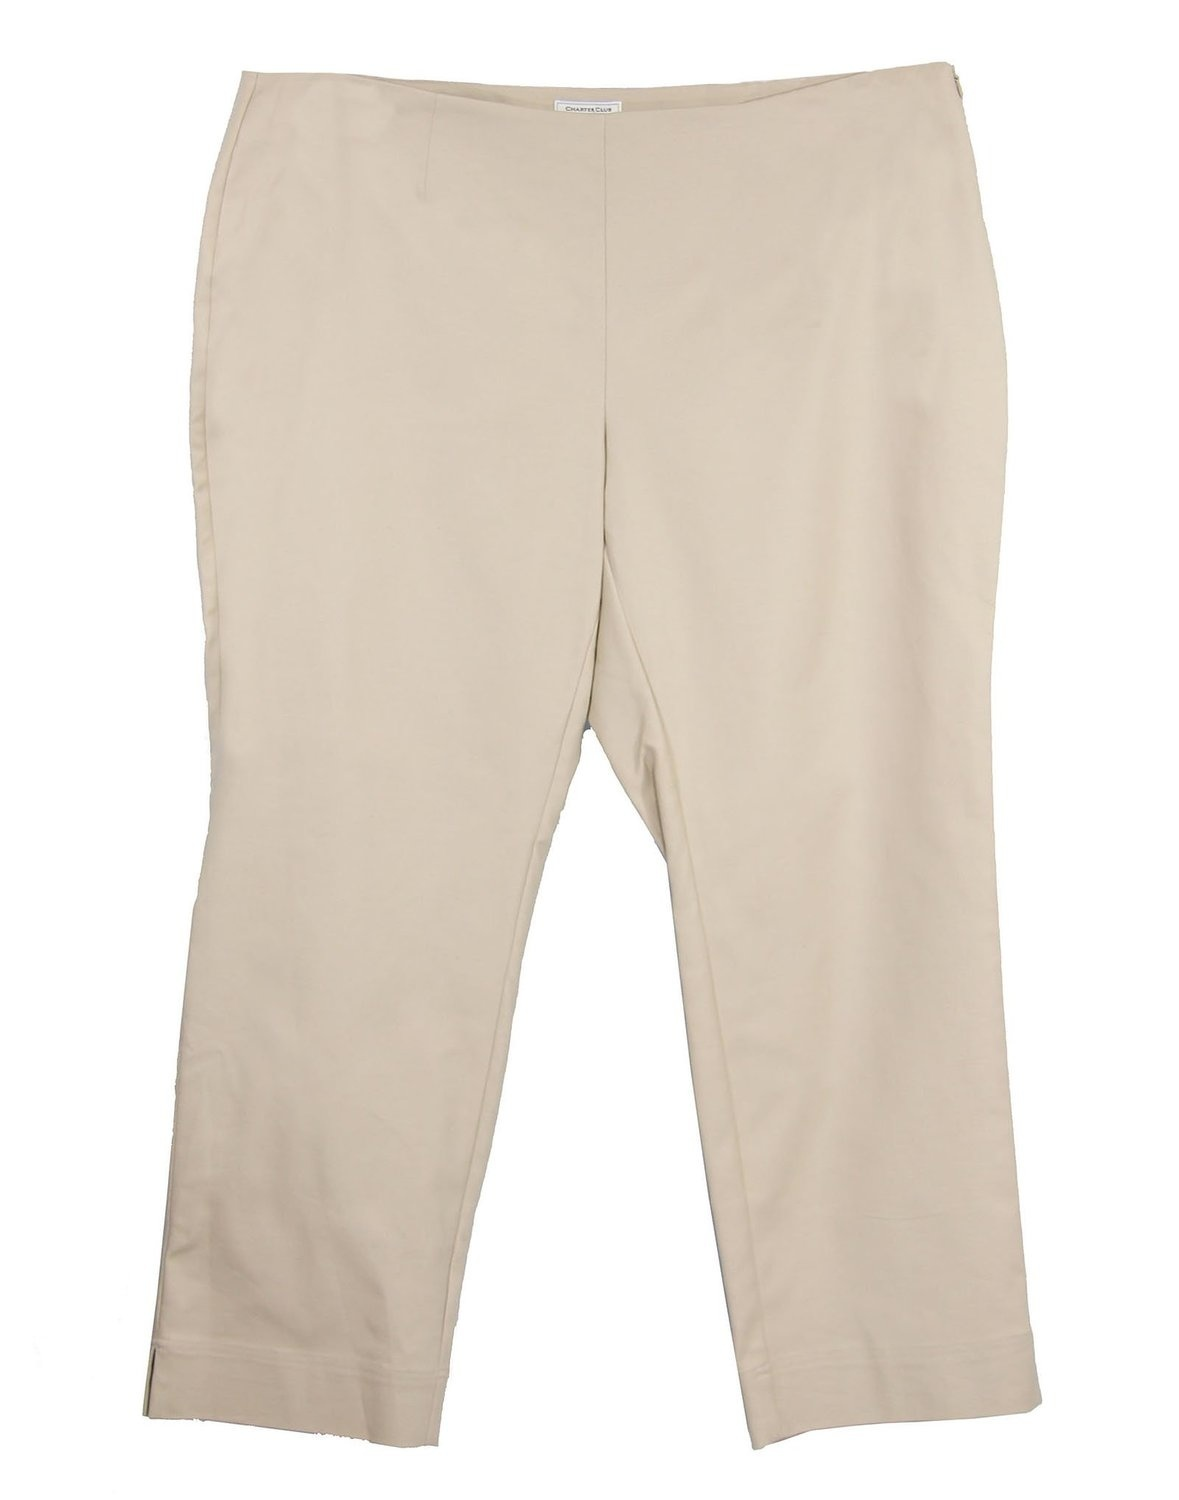 New Eileen Fisher Stripe Tapered Hemp Blend Ankle Pants Size PL MSRP $168